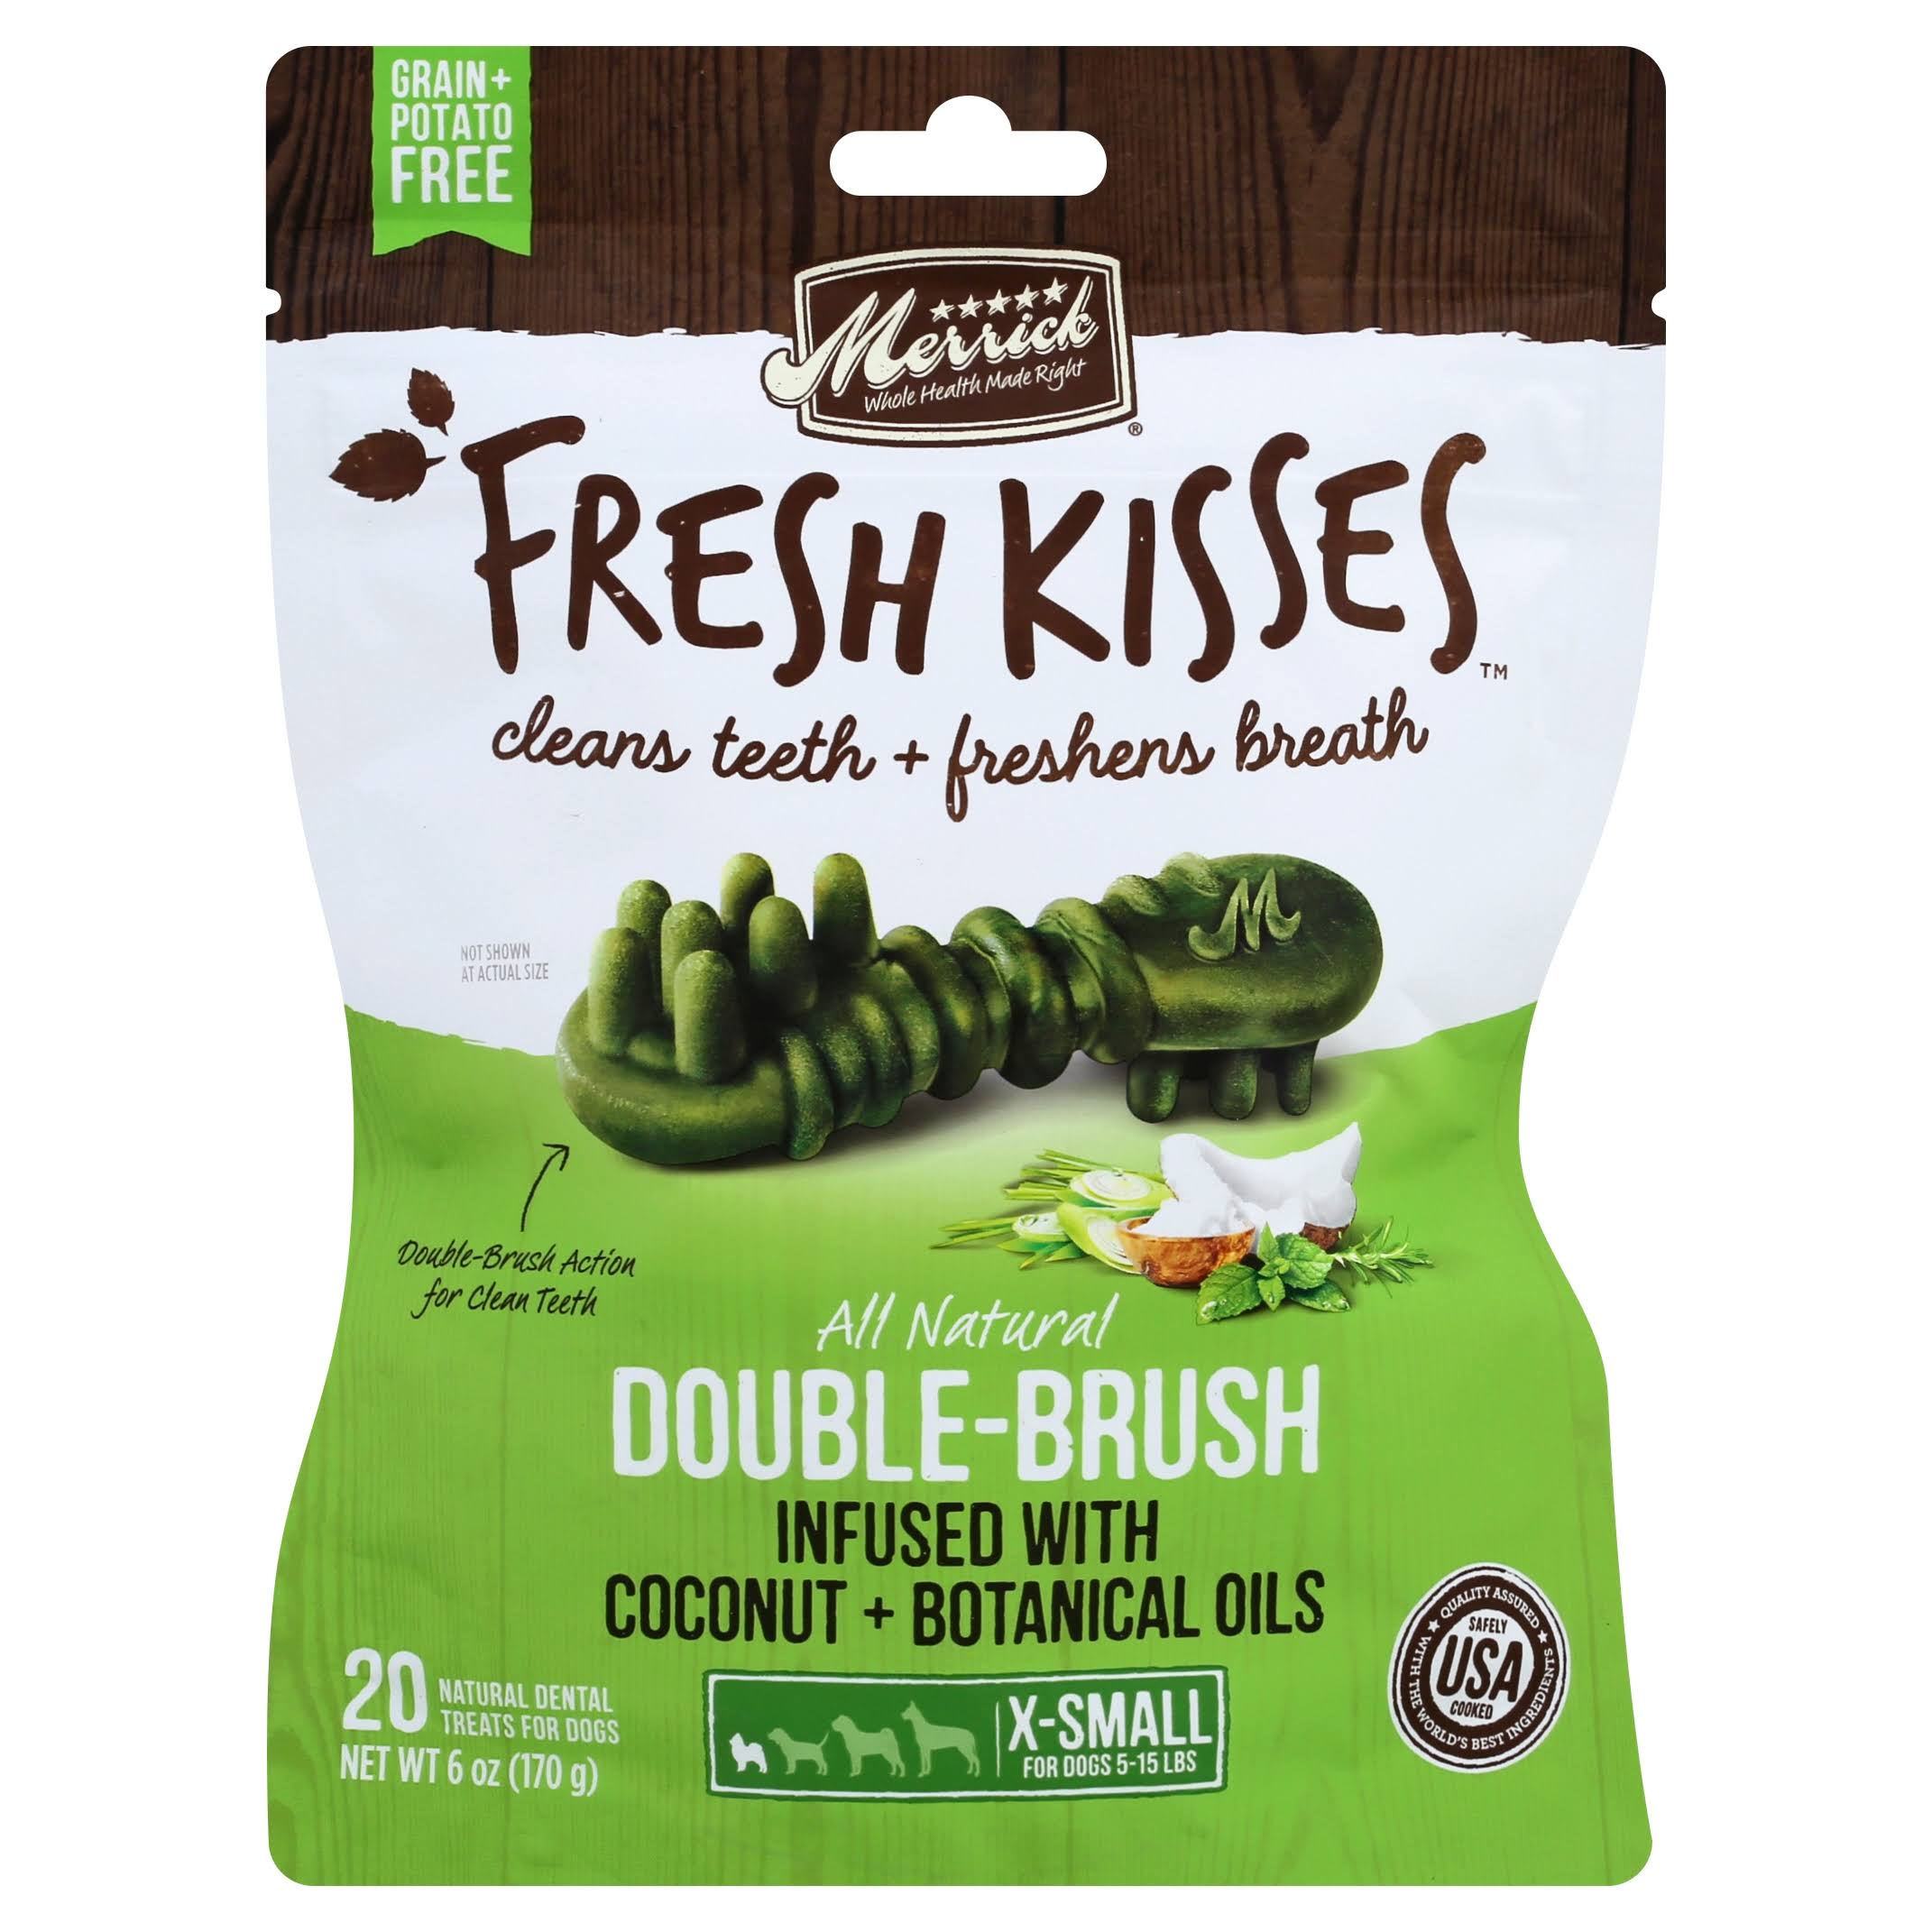 Merrick Fresh Kisses Dental Treats, for Dogs, 5-15 lbs, Coconut + Botanical Oils, Double-Brush, X-Small - 20 treats, 6 oz